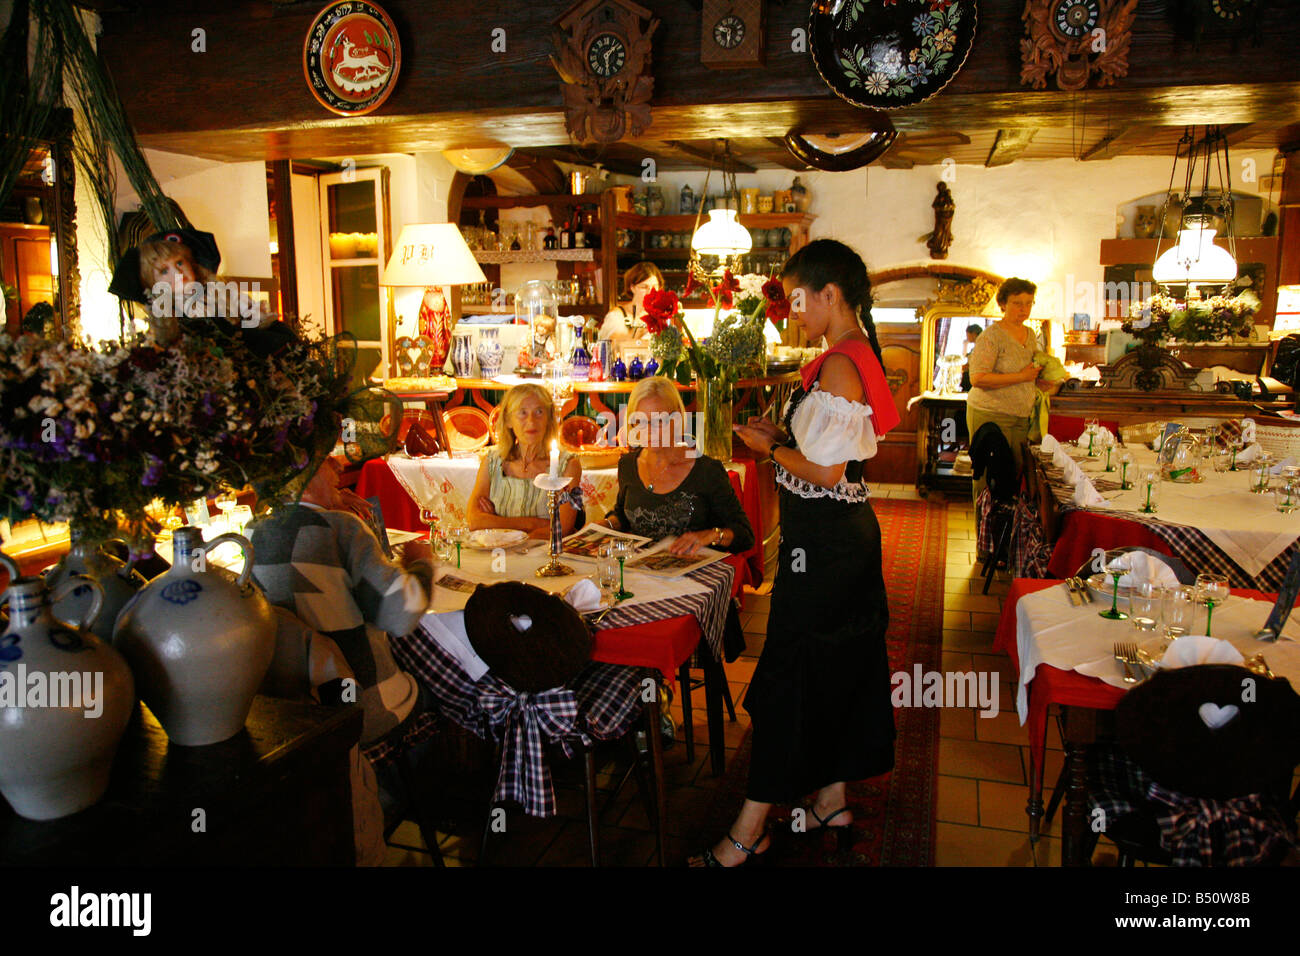 Sep 2008 People sitting at the Taverne Katz restaurant in Saverne Alsace France Stock Photo